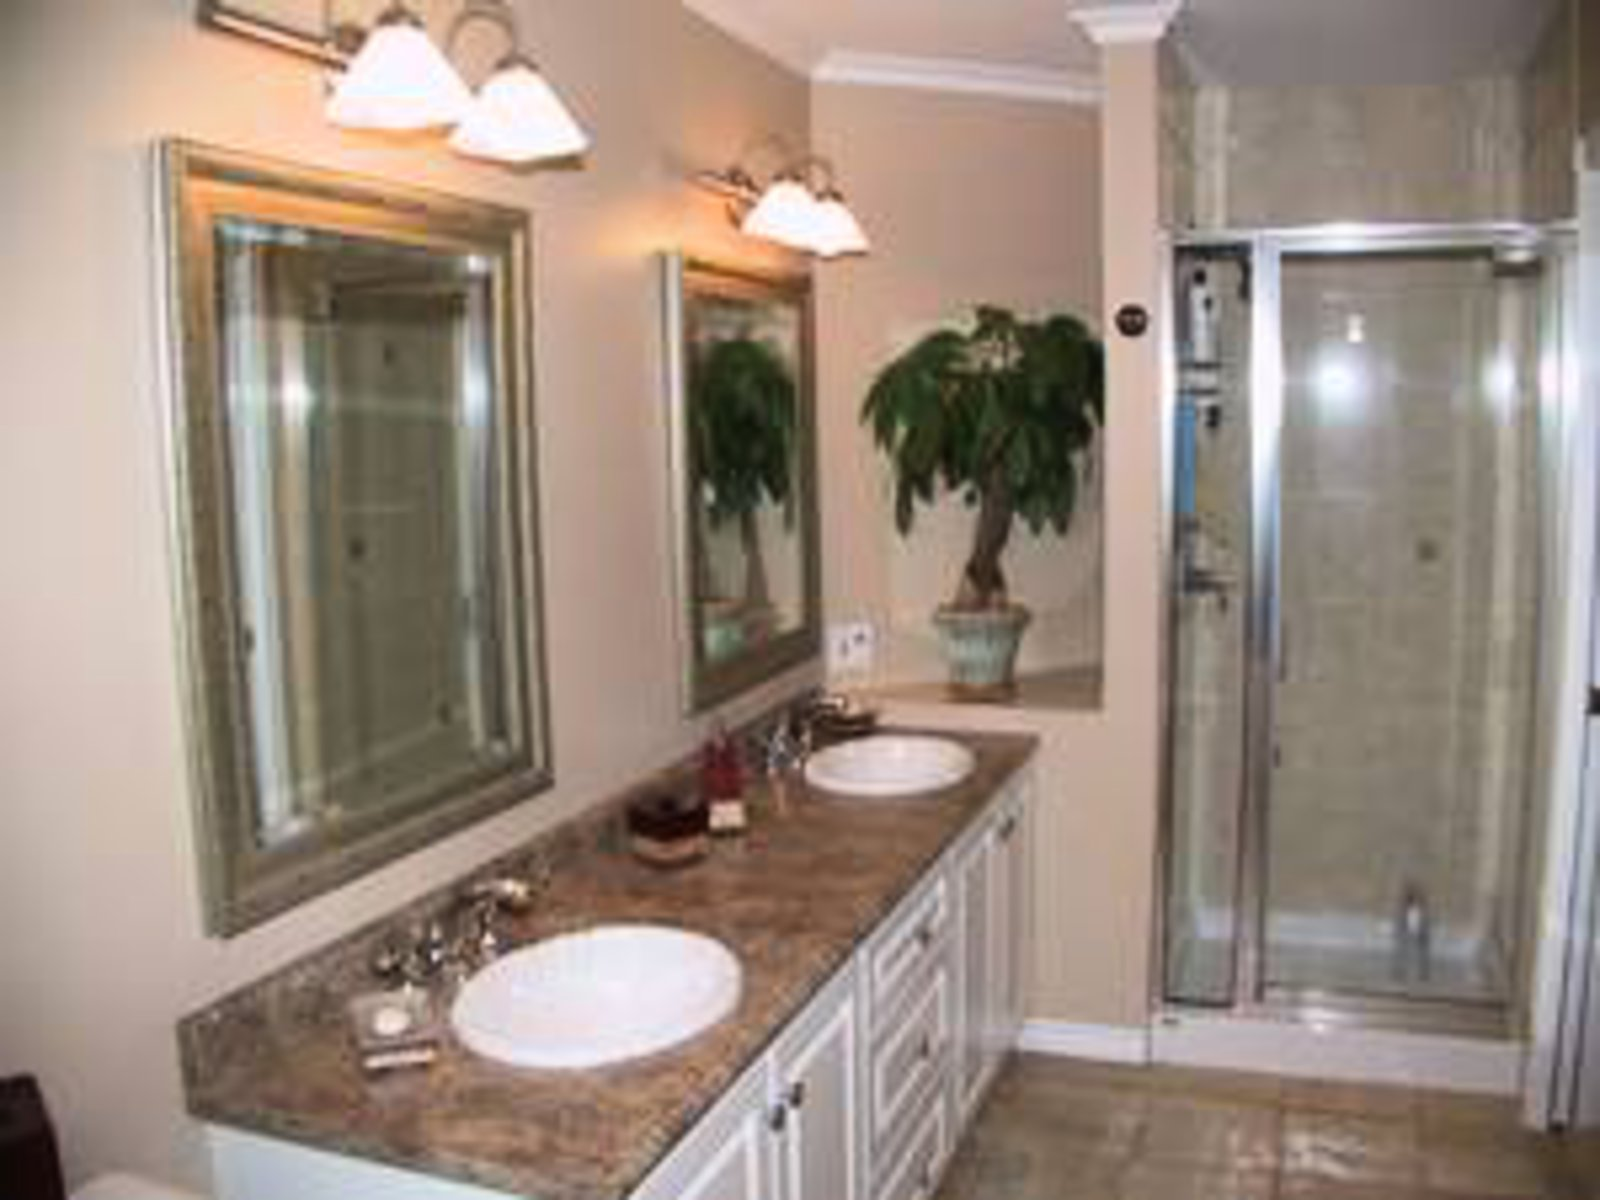 Master Bathroom 2 sinks, heated titled floors, jacuzzi tub